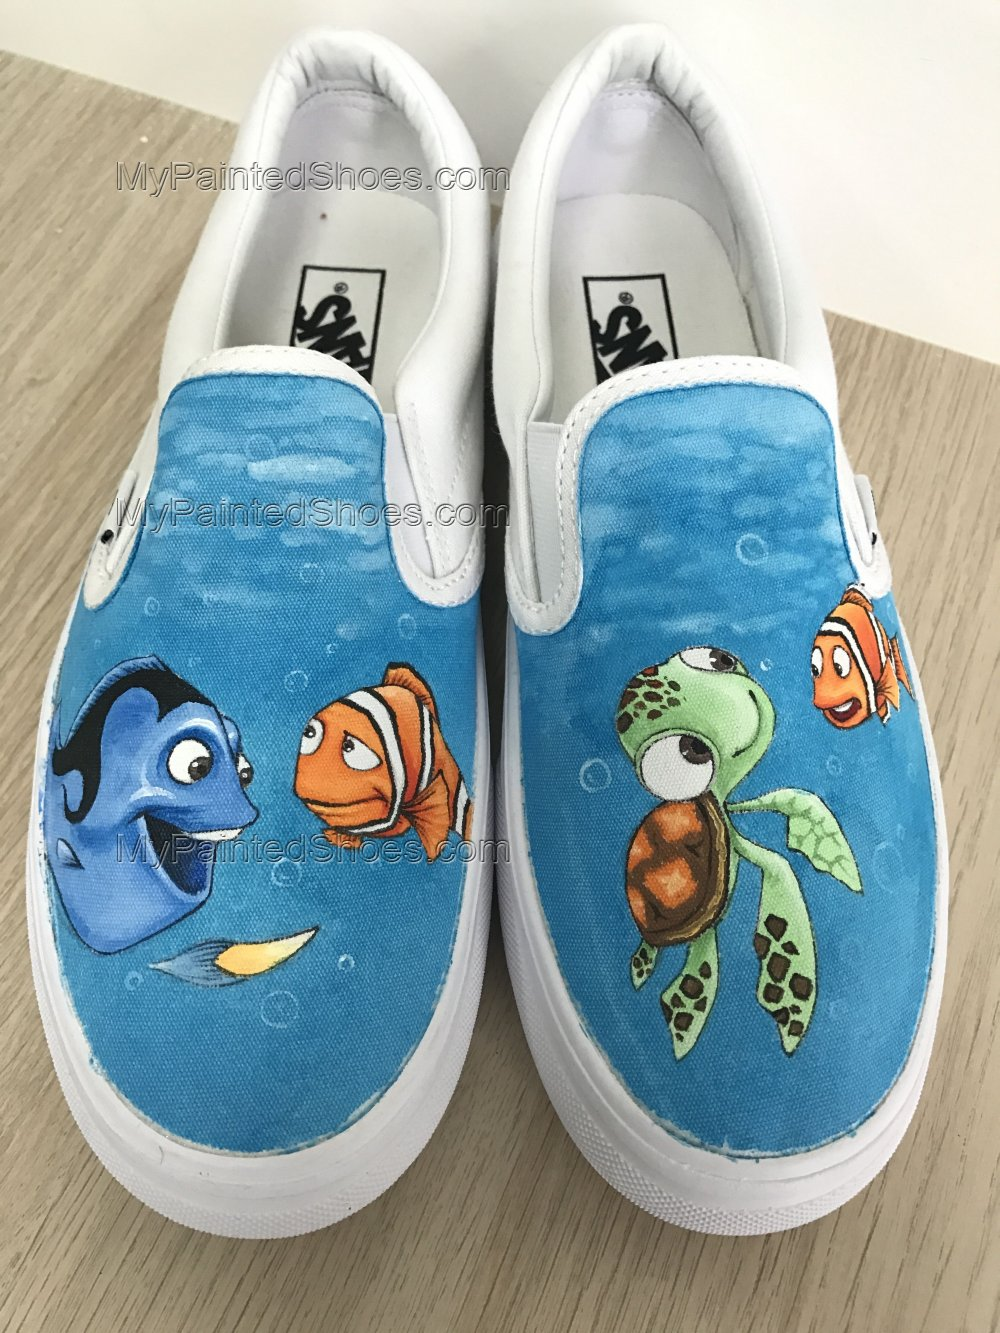 Finding Nemo Vans Custom Hand Painted Shoes-3